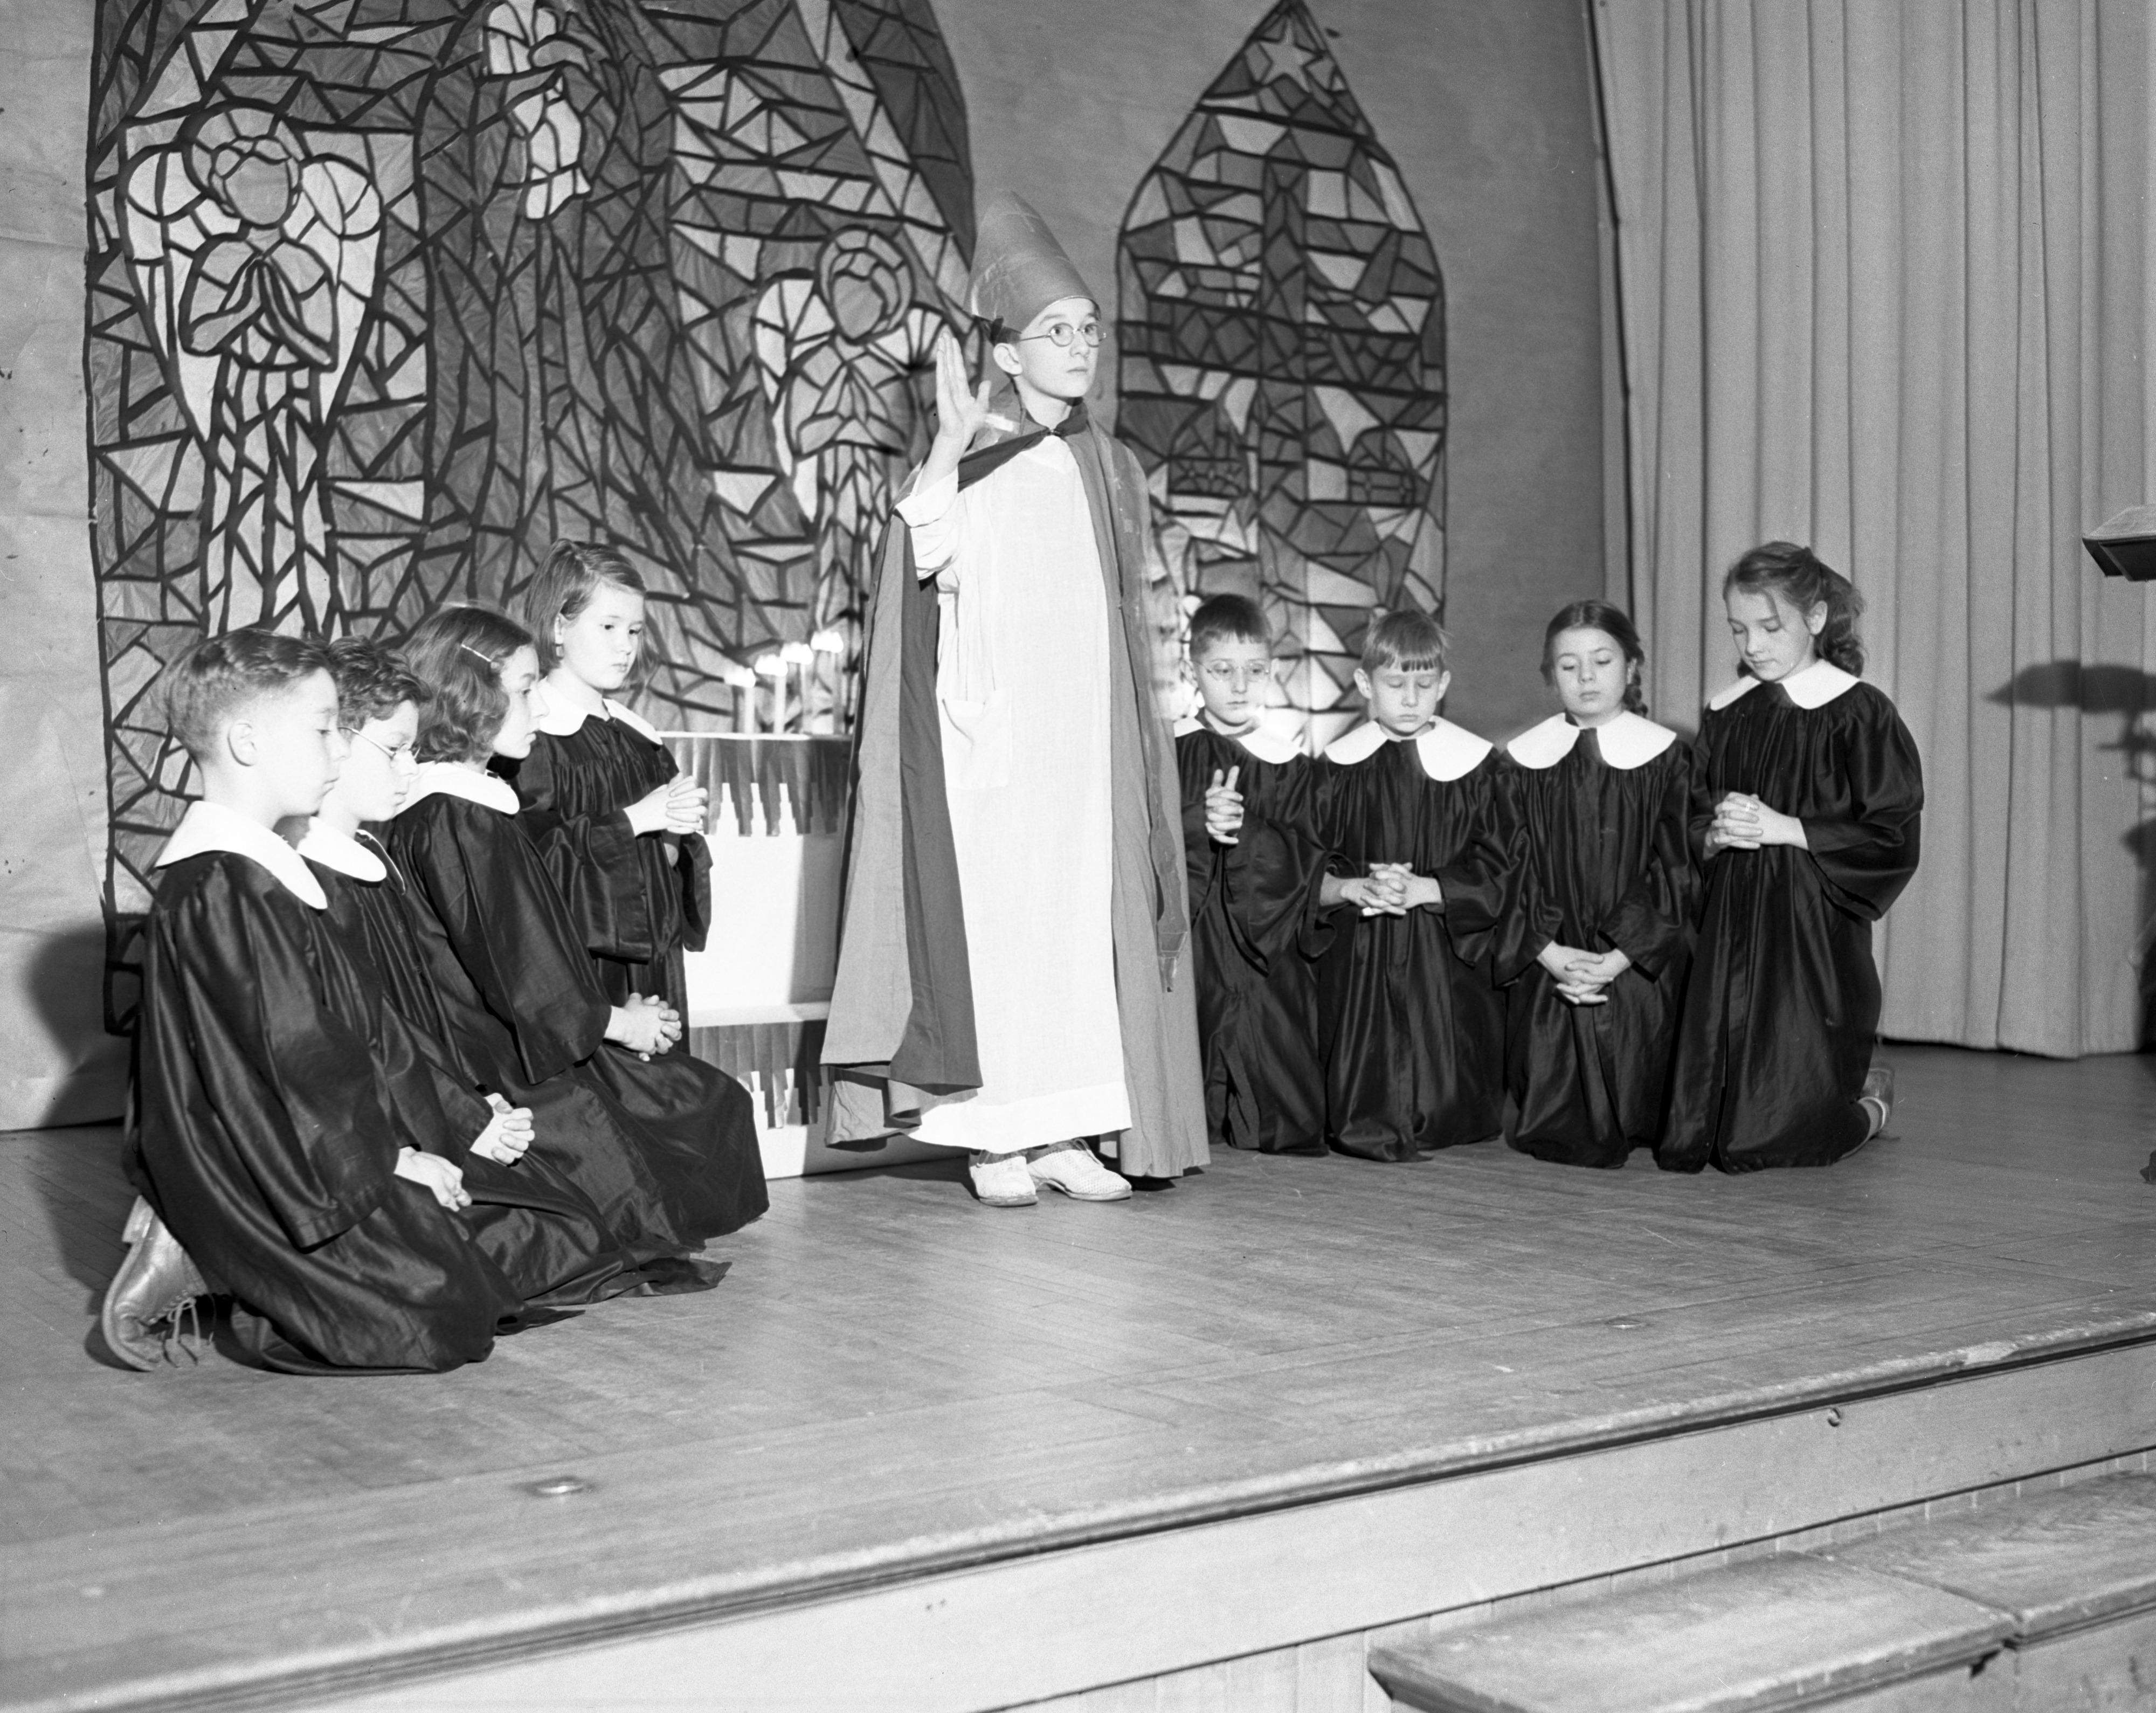 Angell School Christmas Pagent, December 1940 image